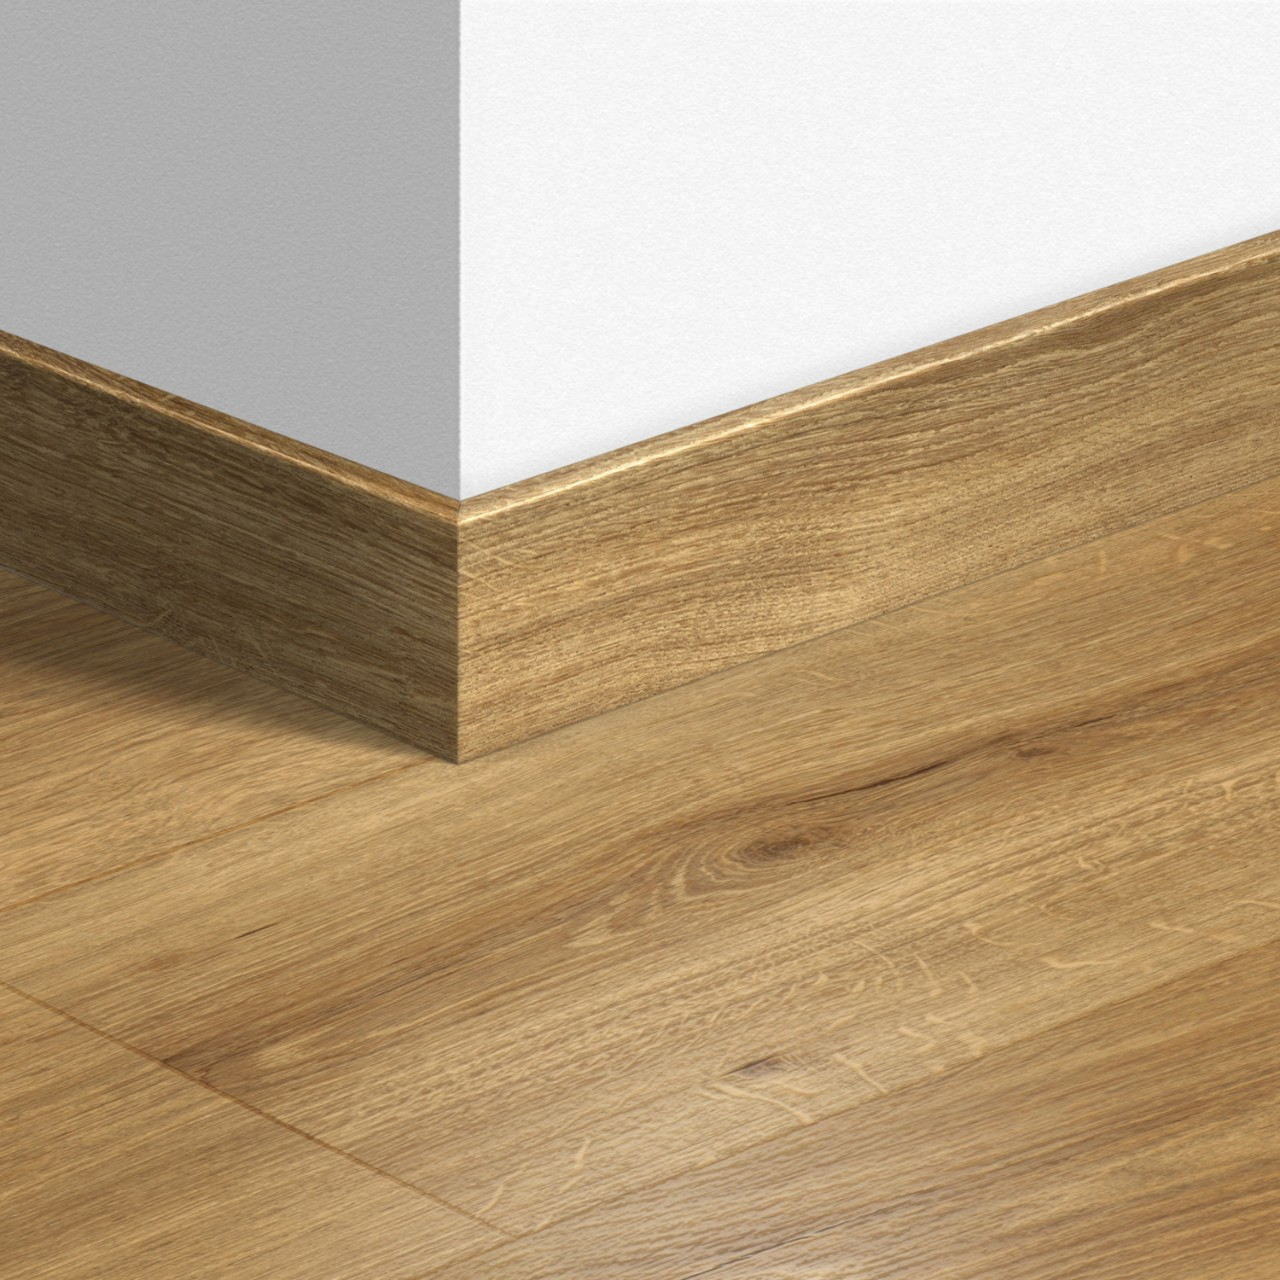 QSPSKR Laminate Accessories Desert Oak Warm Natural QSPSKR03551